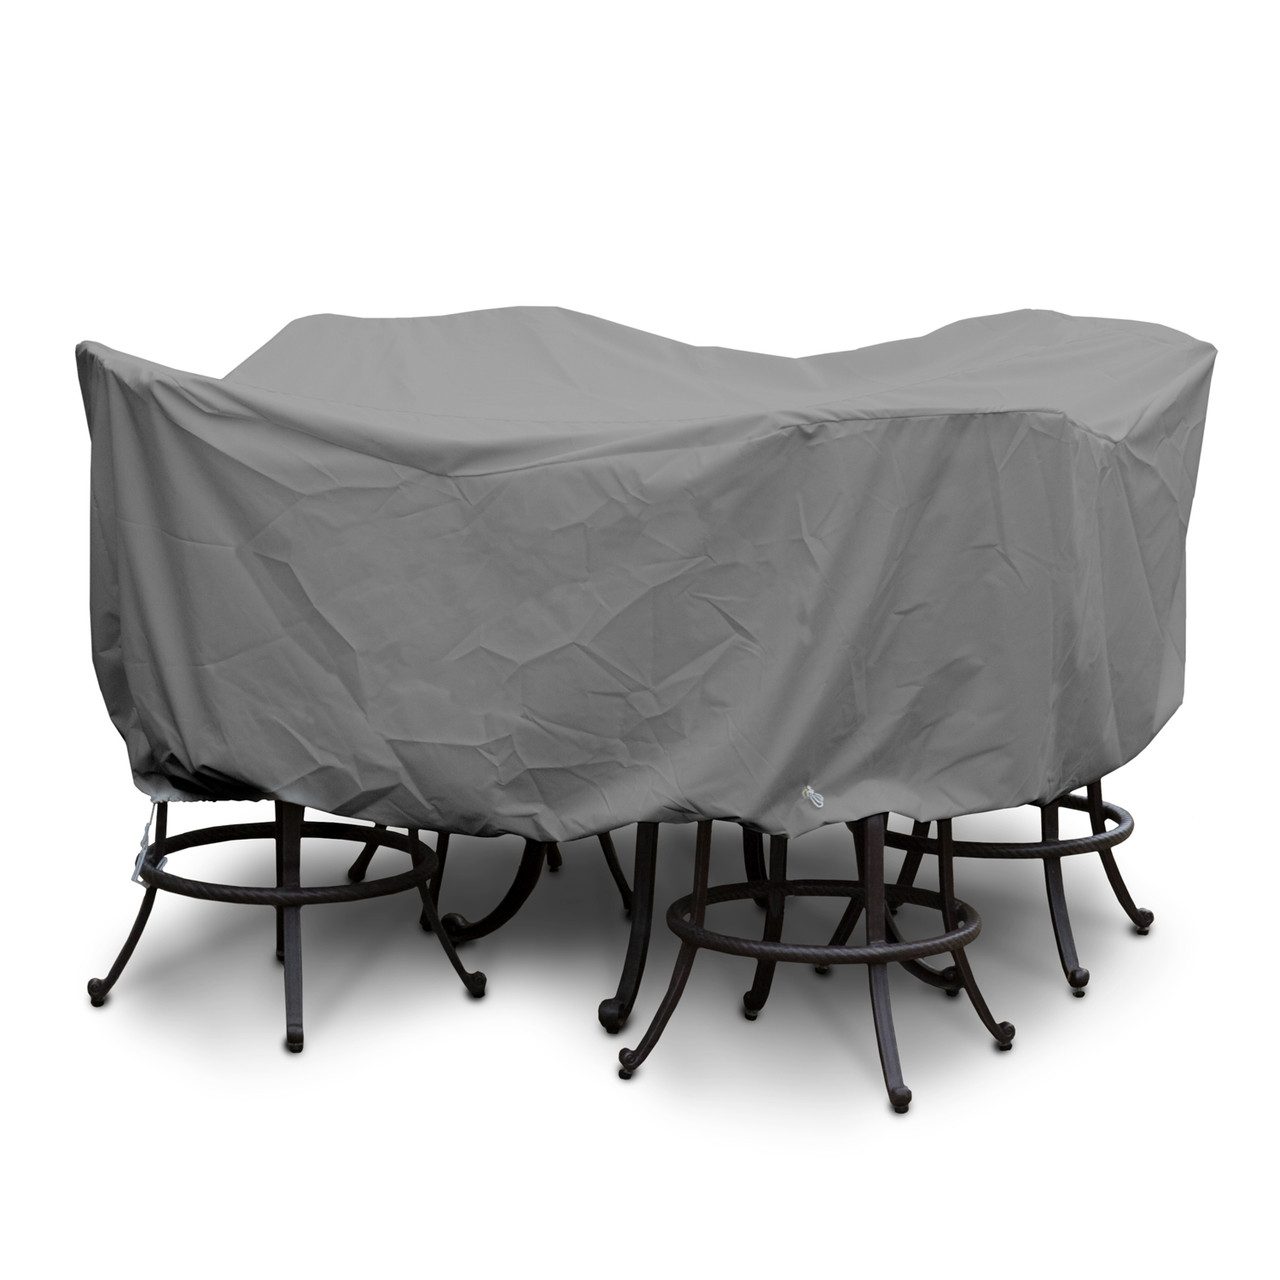 Bar set cover outdoor furniture covers for Outdoor furniture covers bar stools